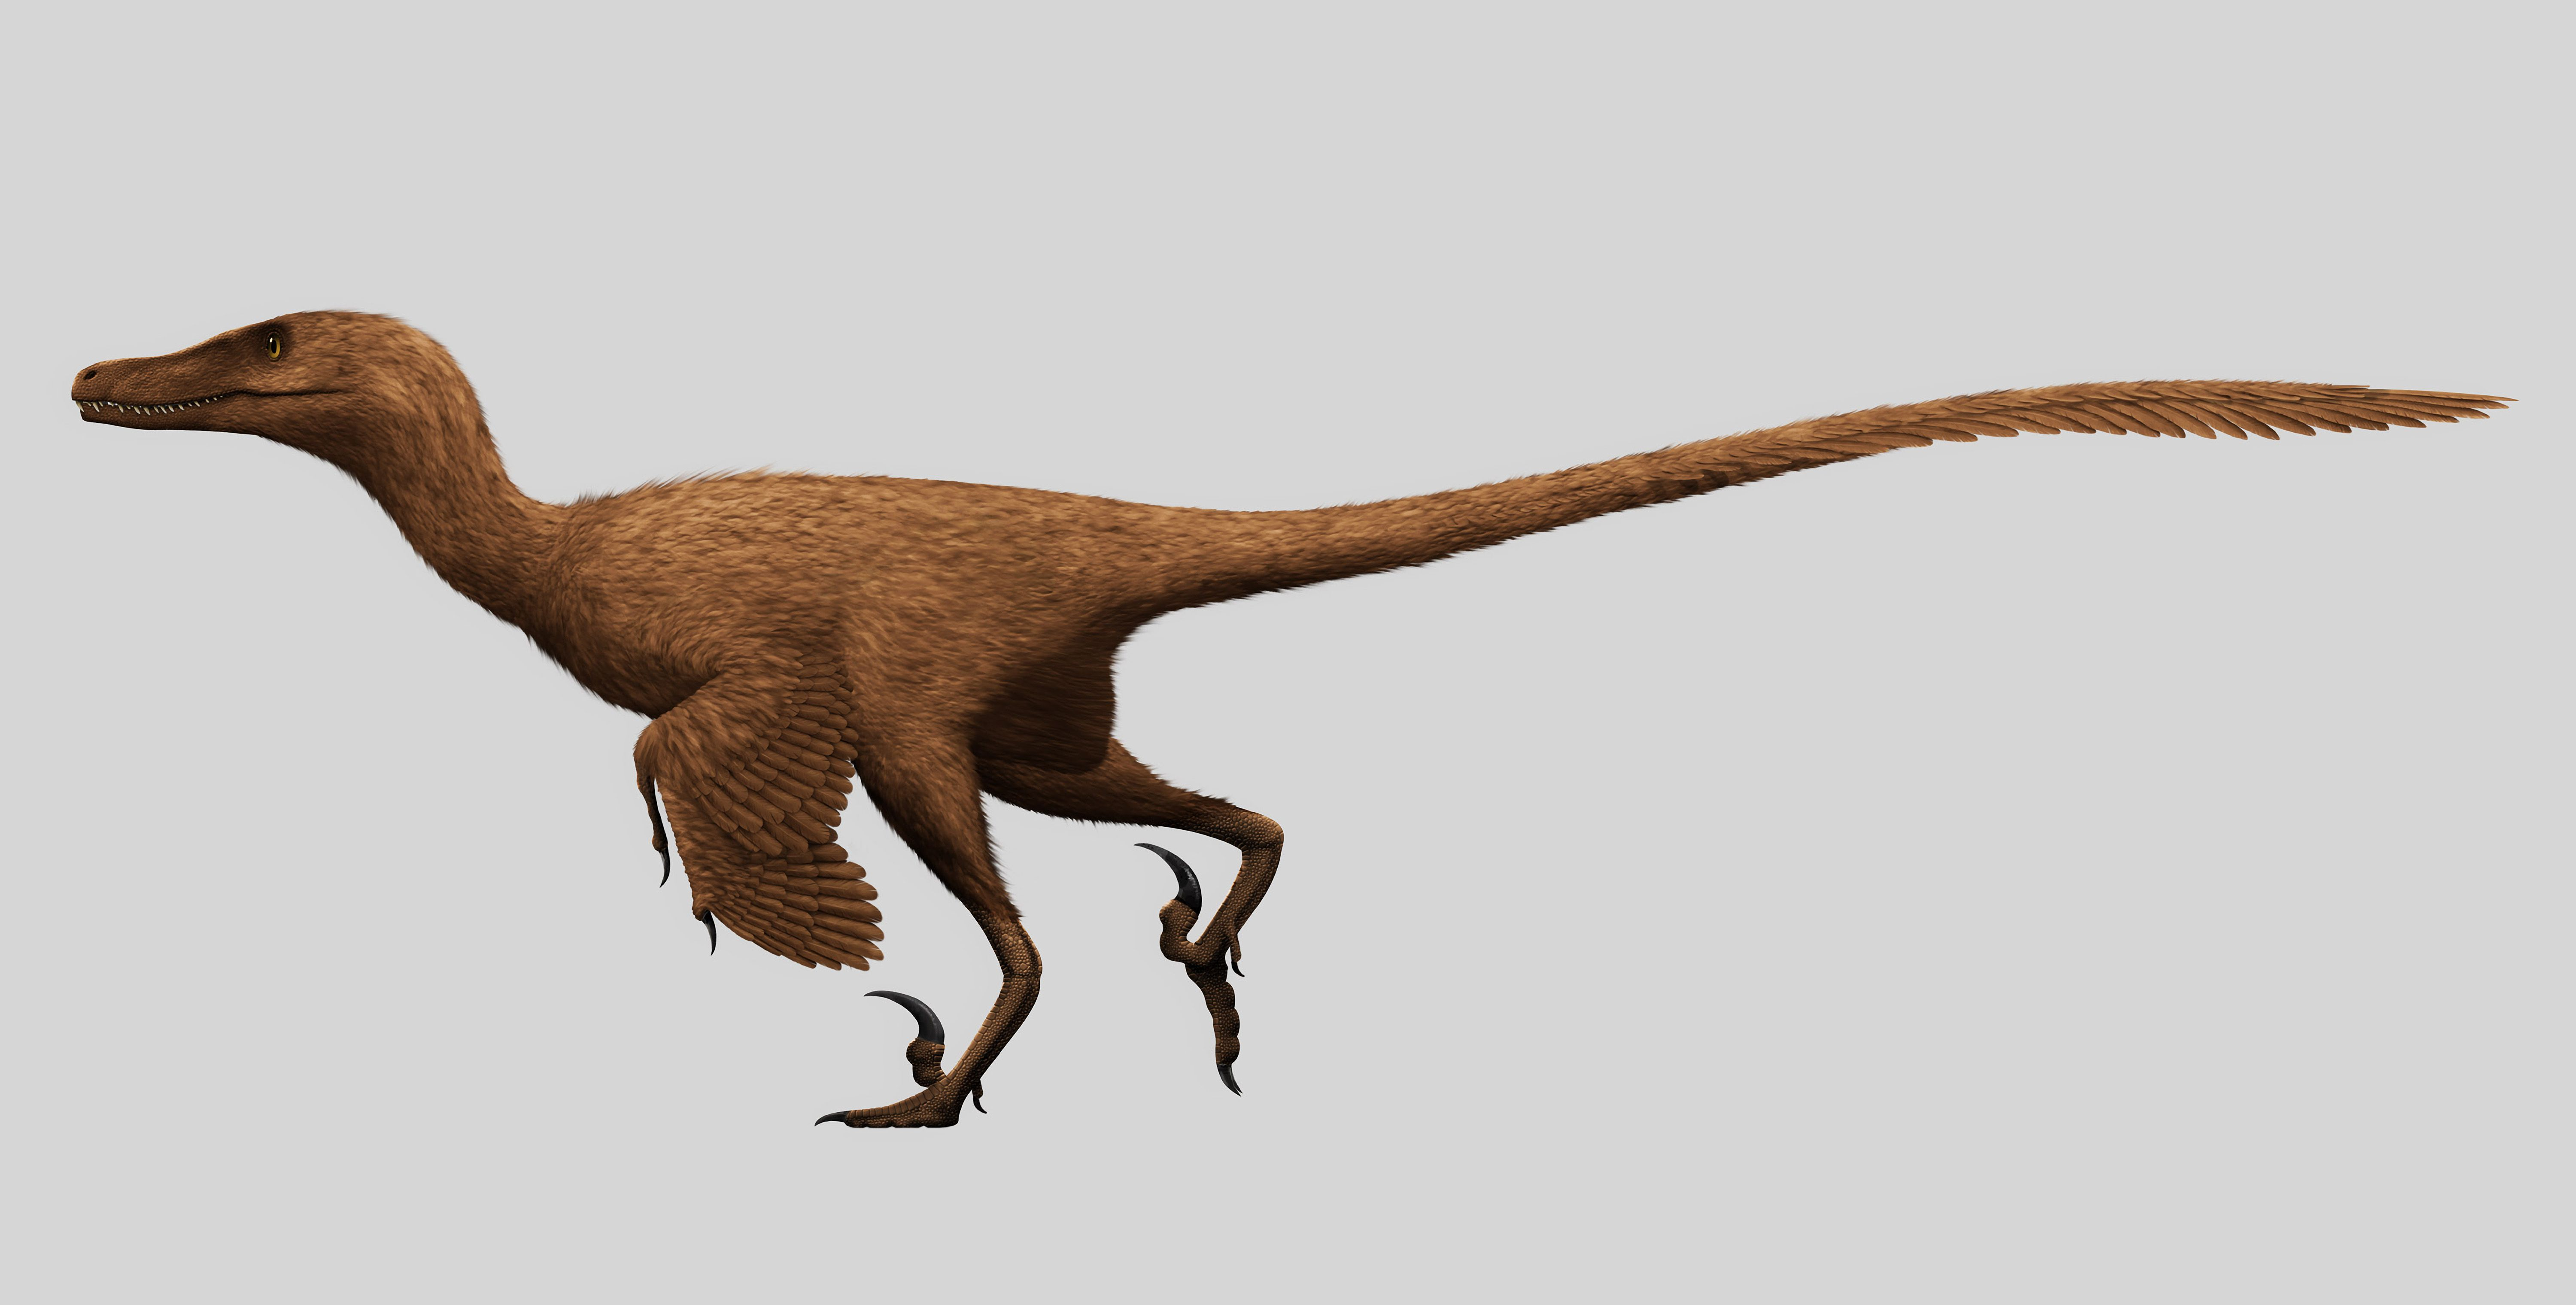 10 facts about velociraptors